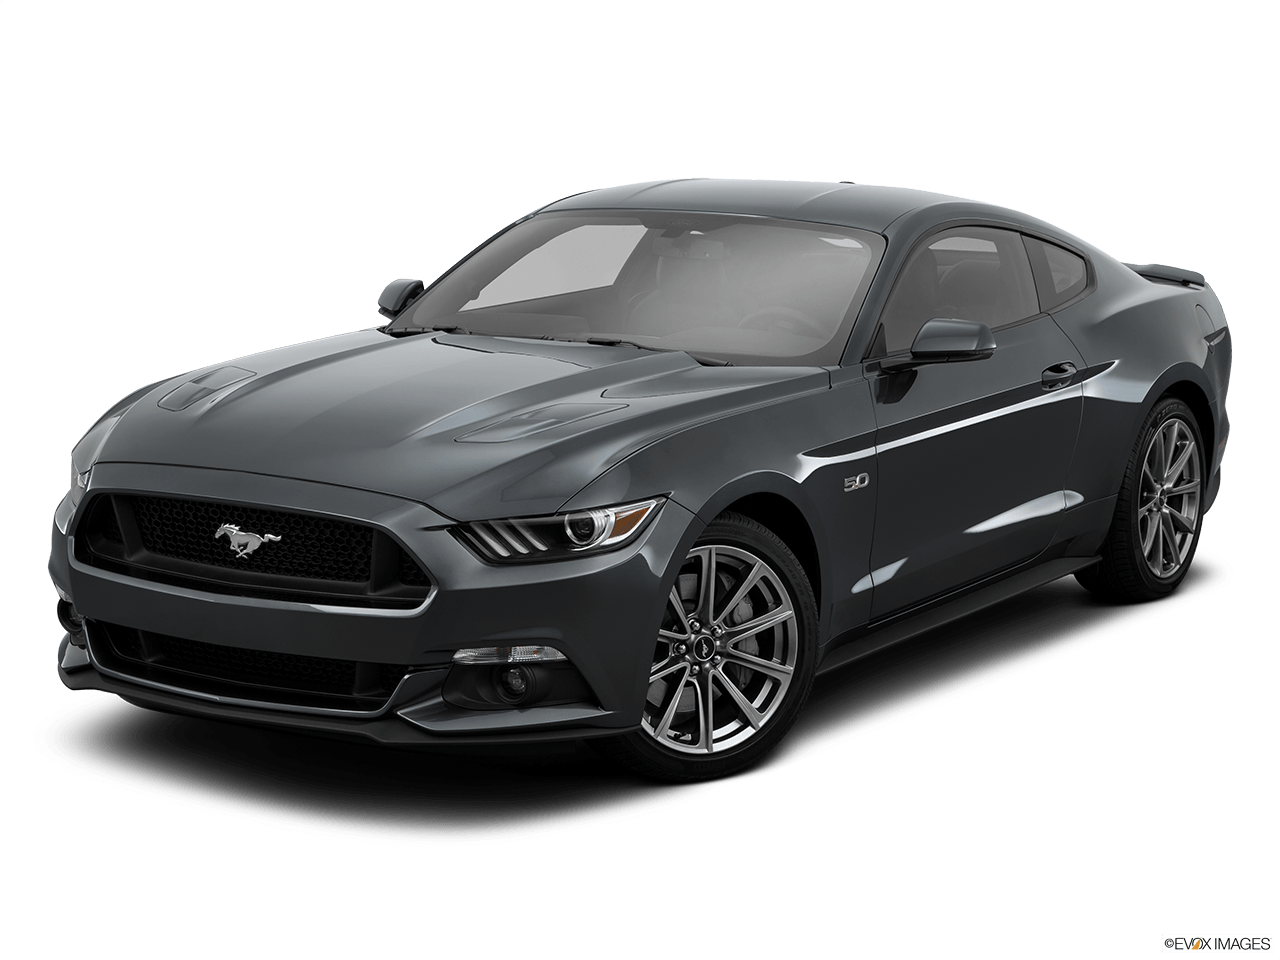 2016 ford mustang png. Grey transparent stickpng